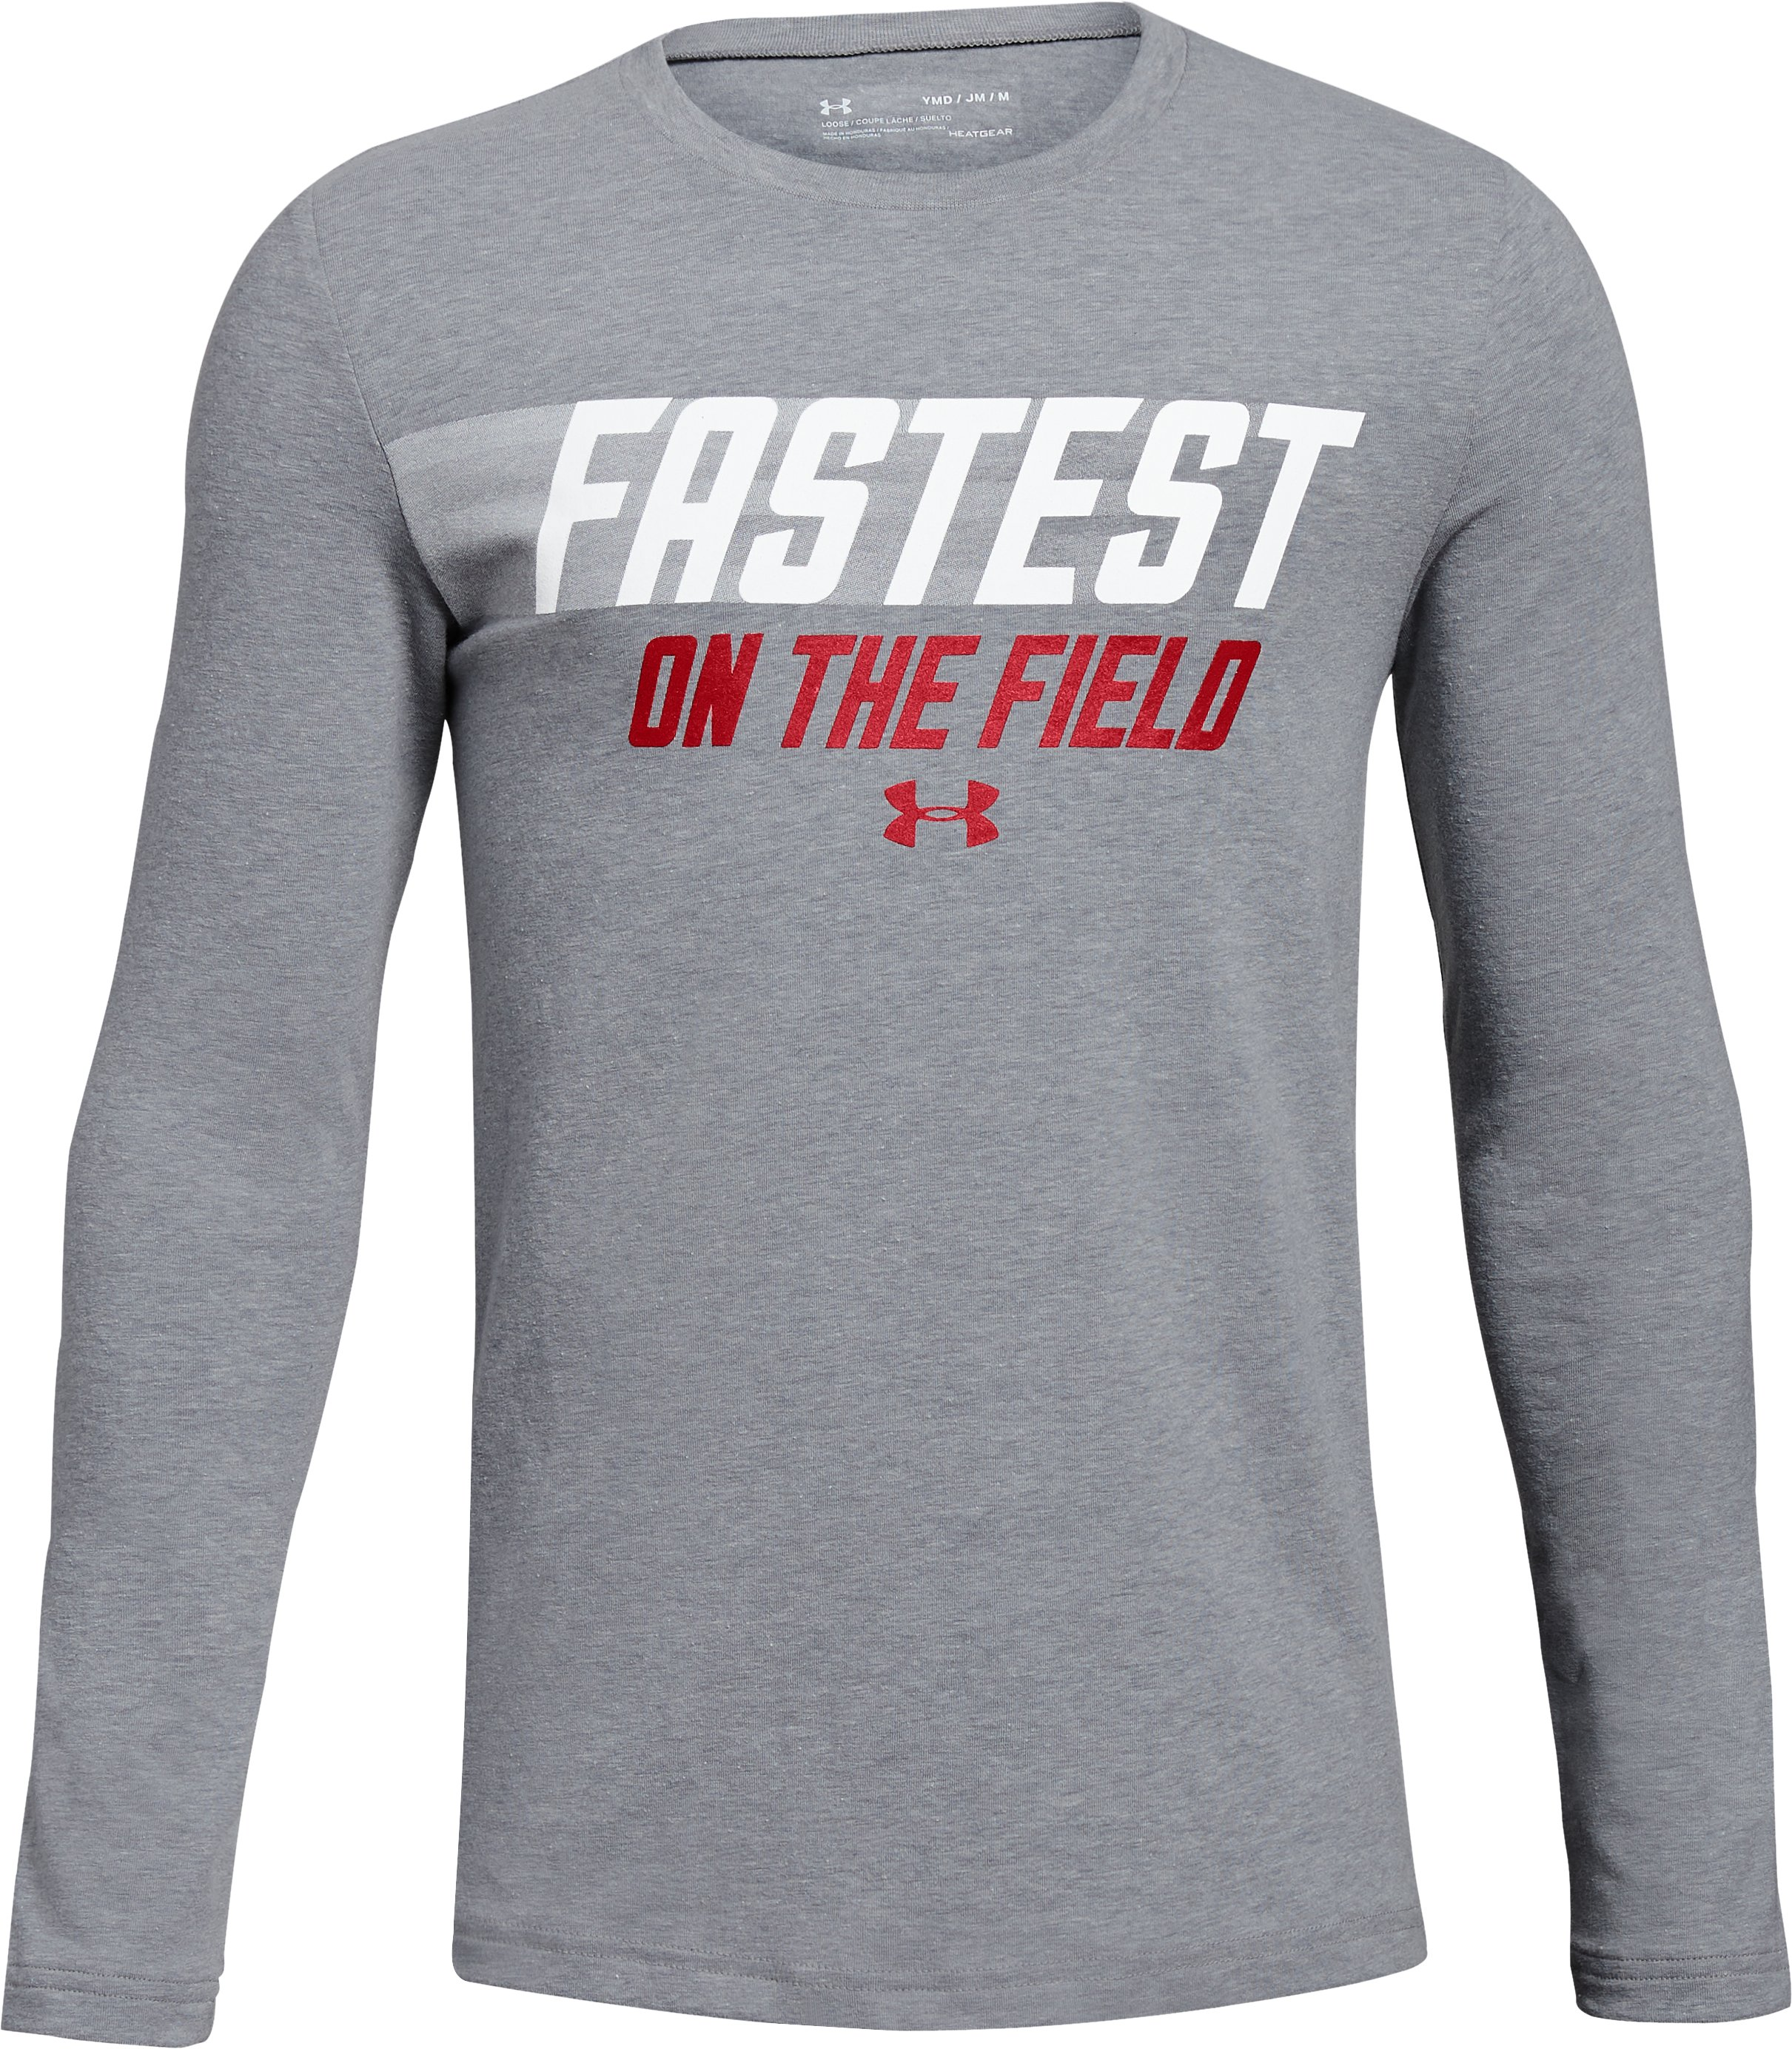 Boys' UA Fastest On The Field Long Sleeve T-Shirt, STEEL LIGHT HEATHER,